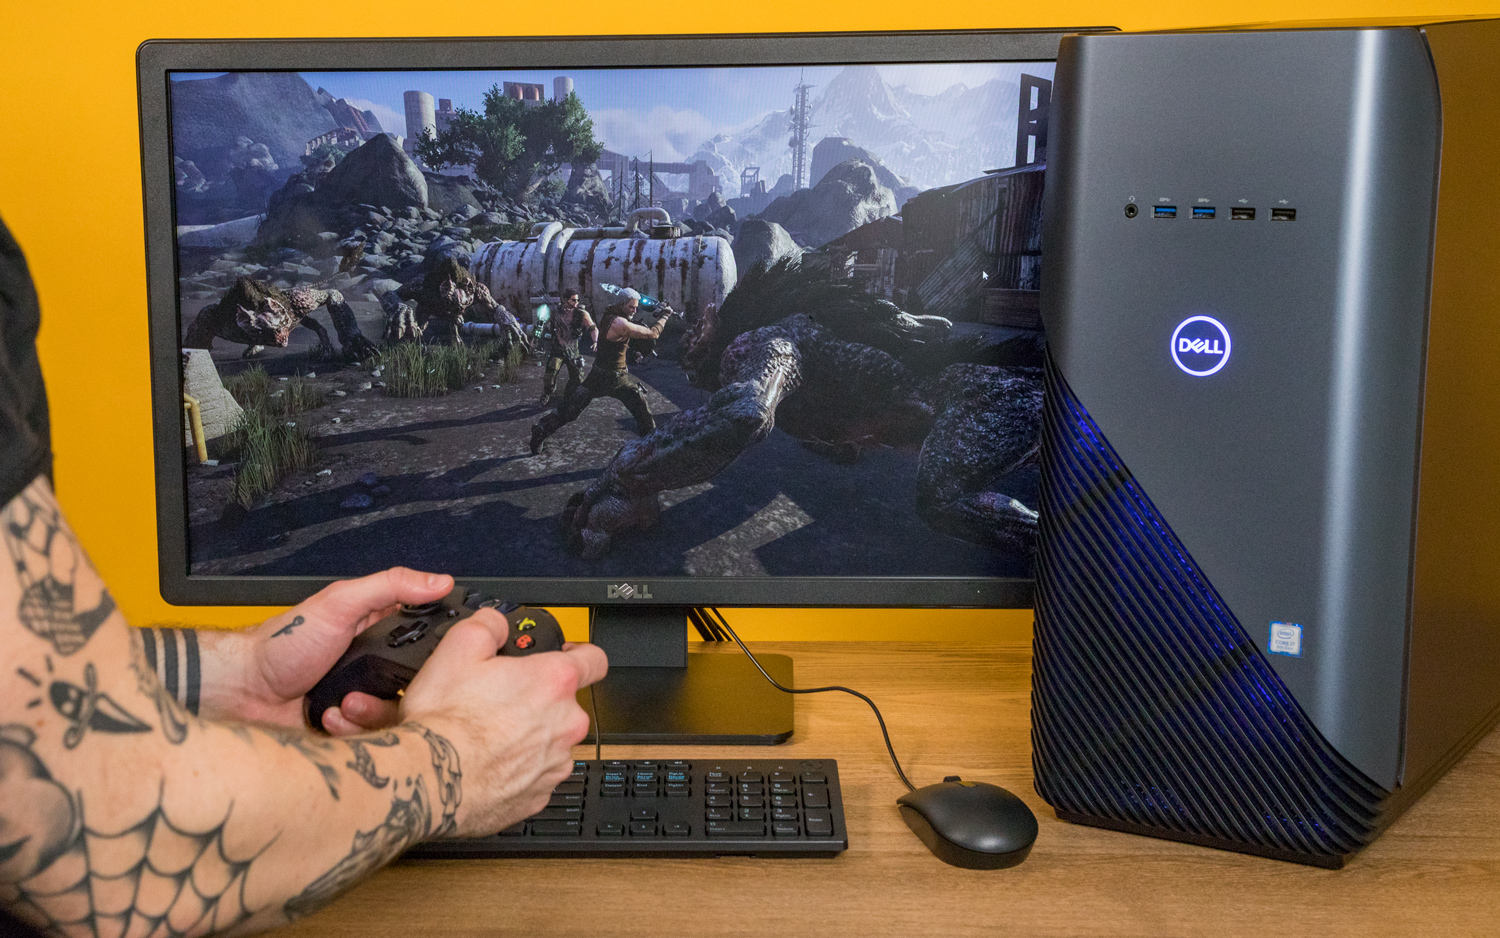 Dell Inspiron Gaming Desktop 5680 - Full Review and